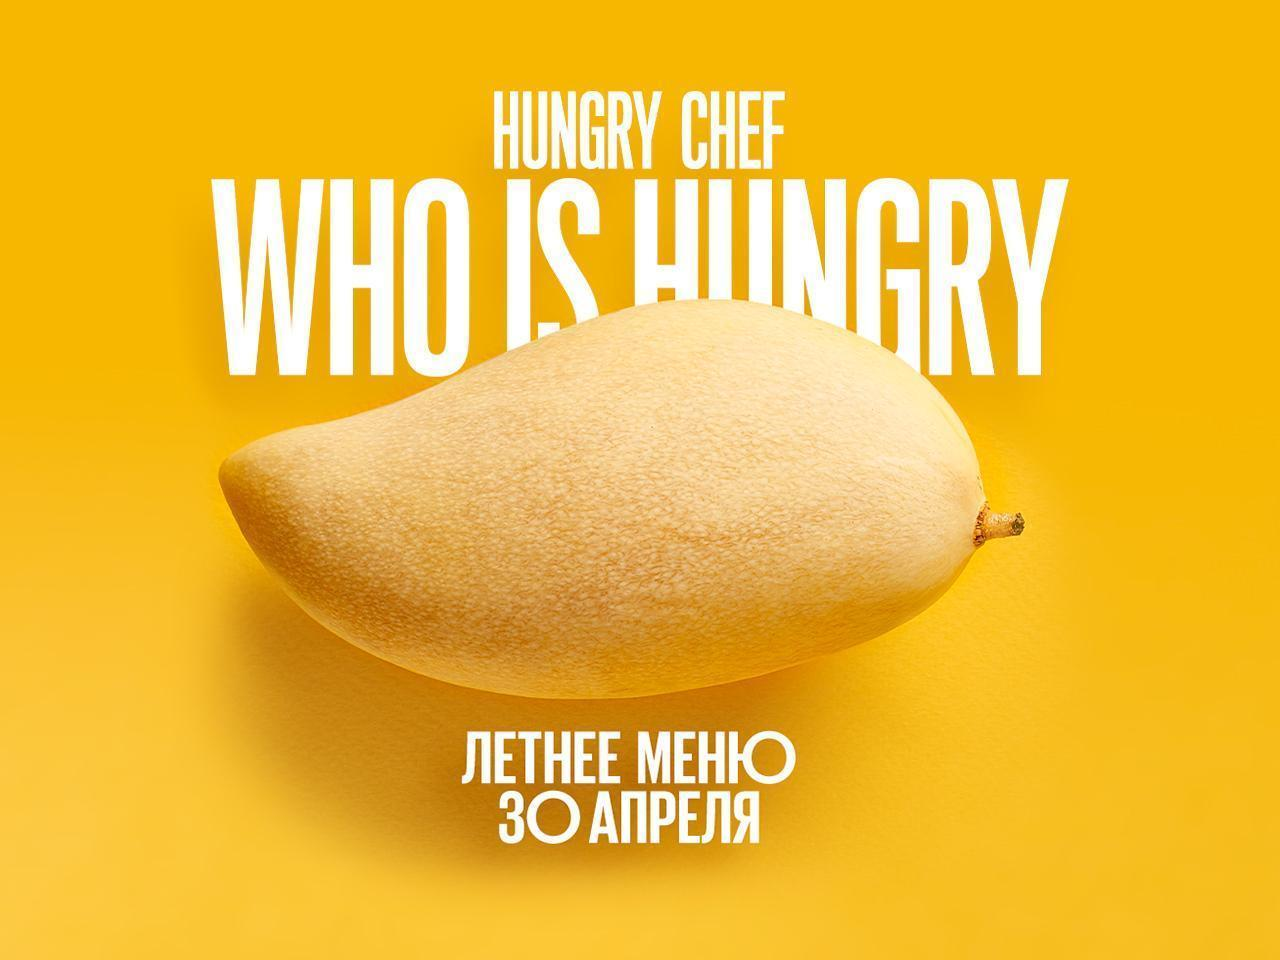 Летнее меню Hungry Chef